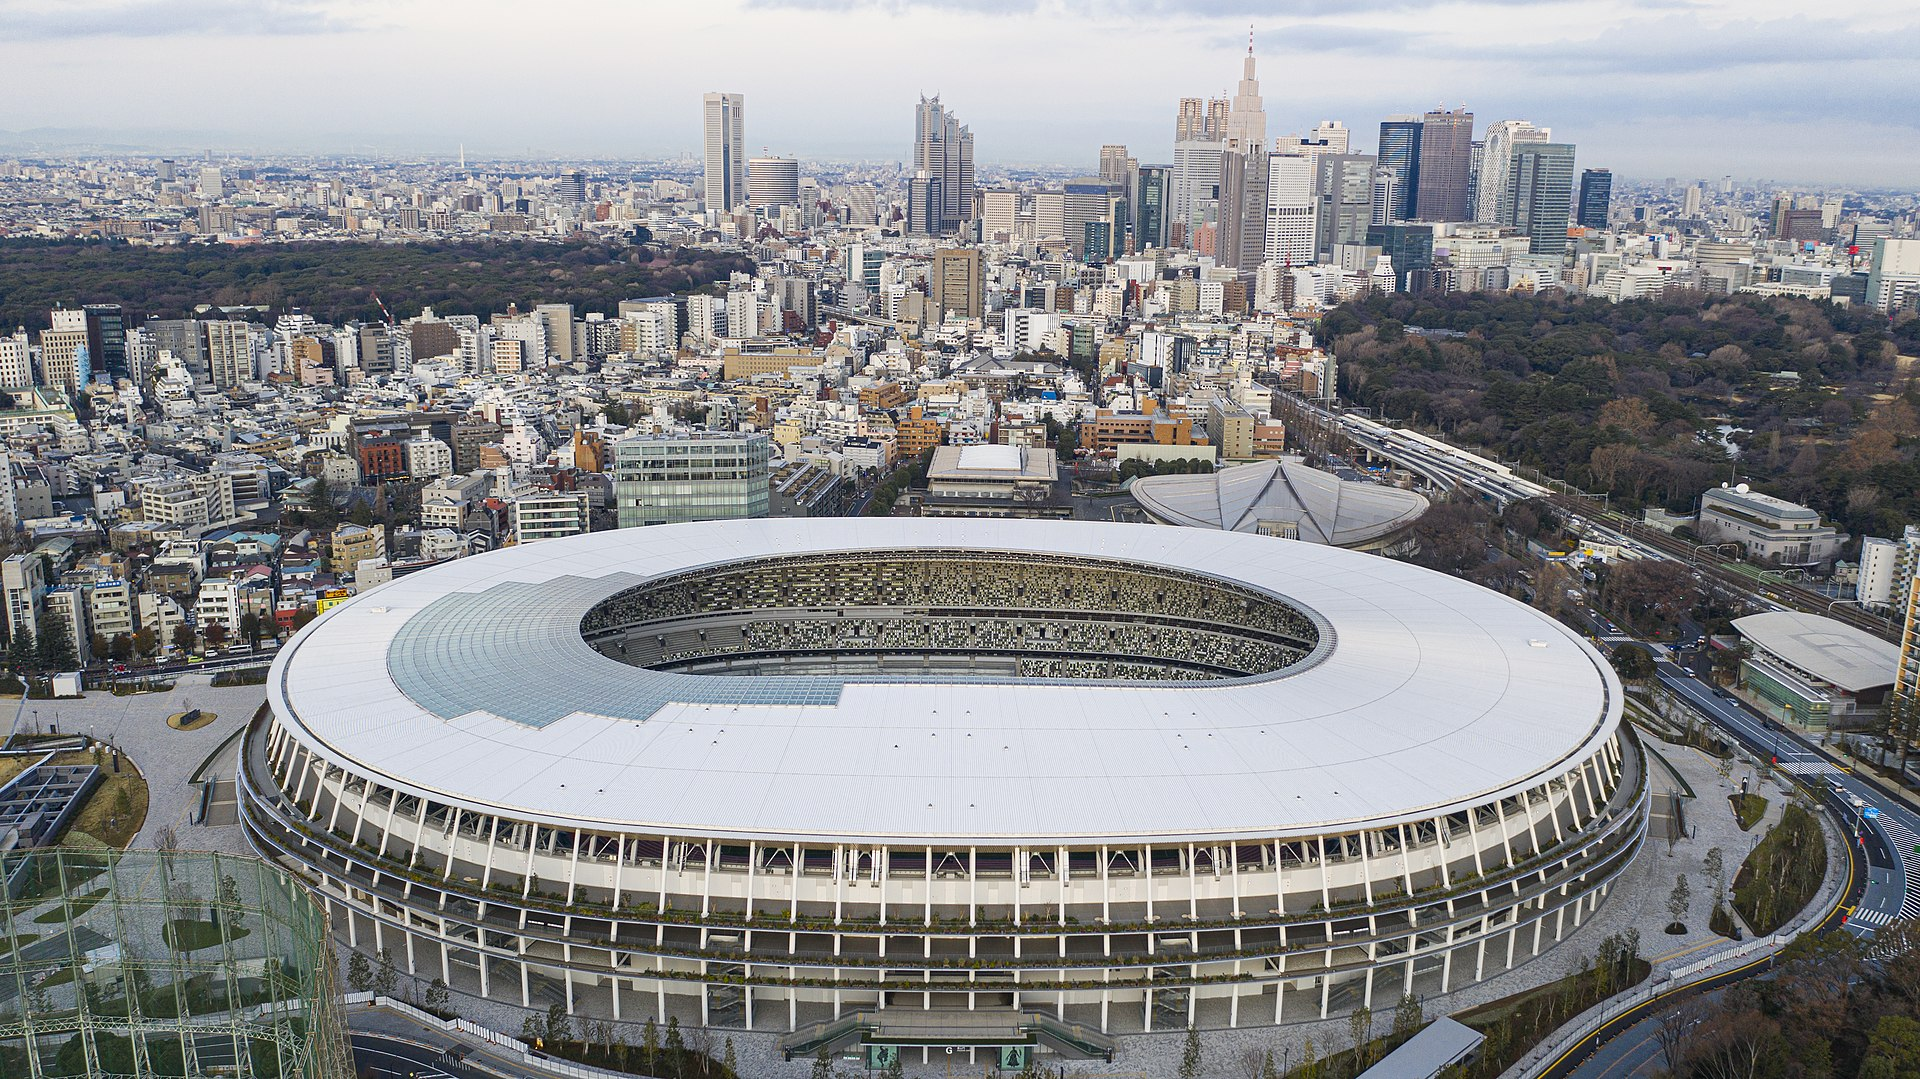 The New National Stadium for the Tokyo Olympic games 2020